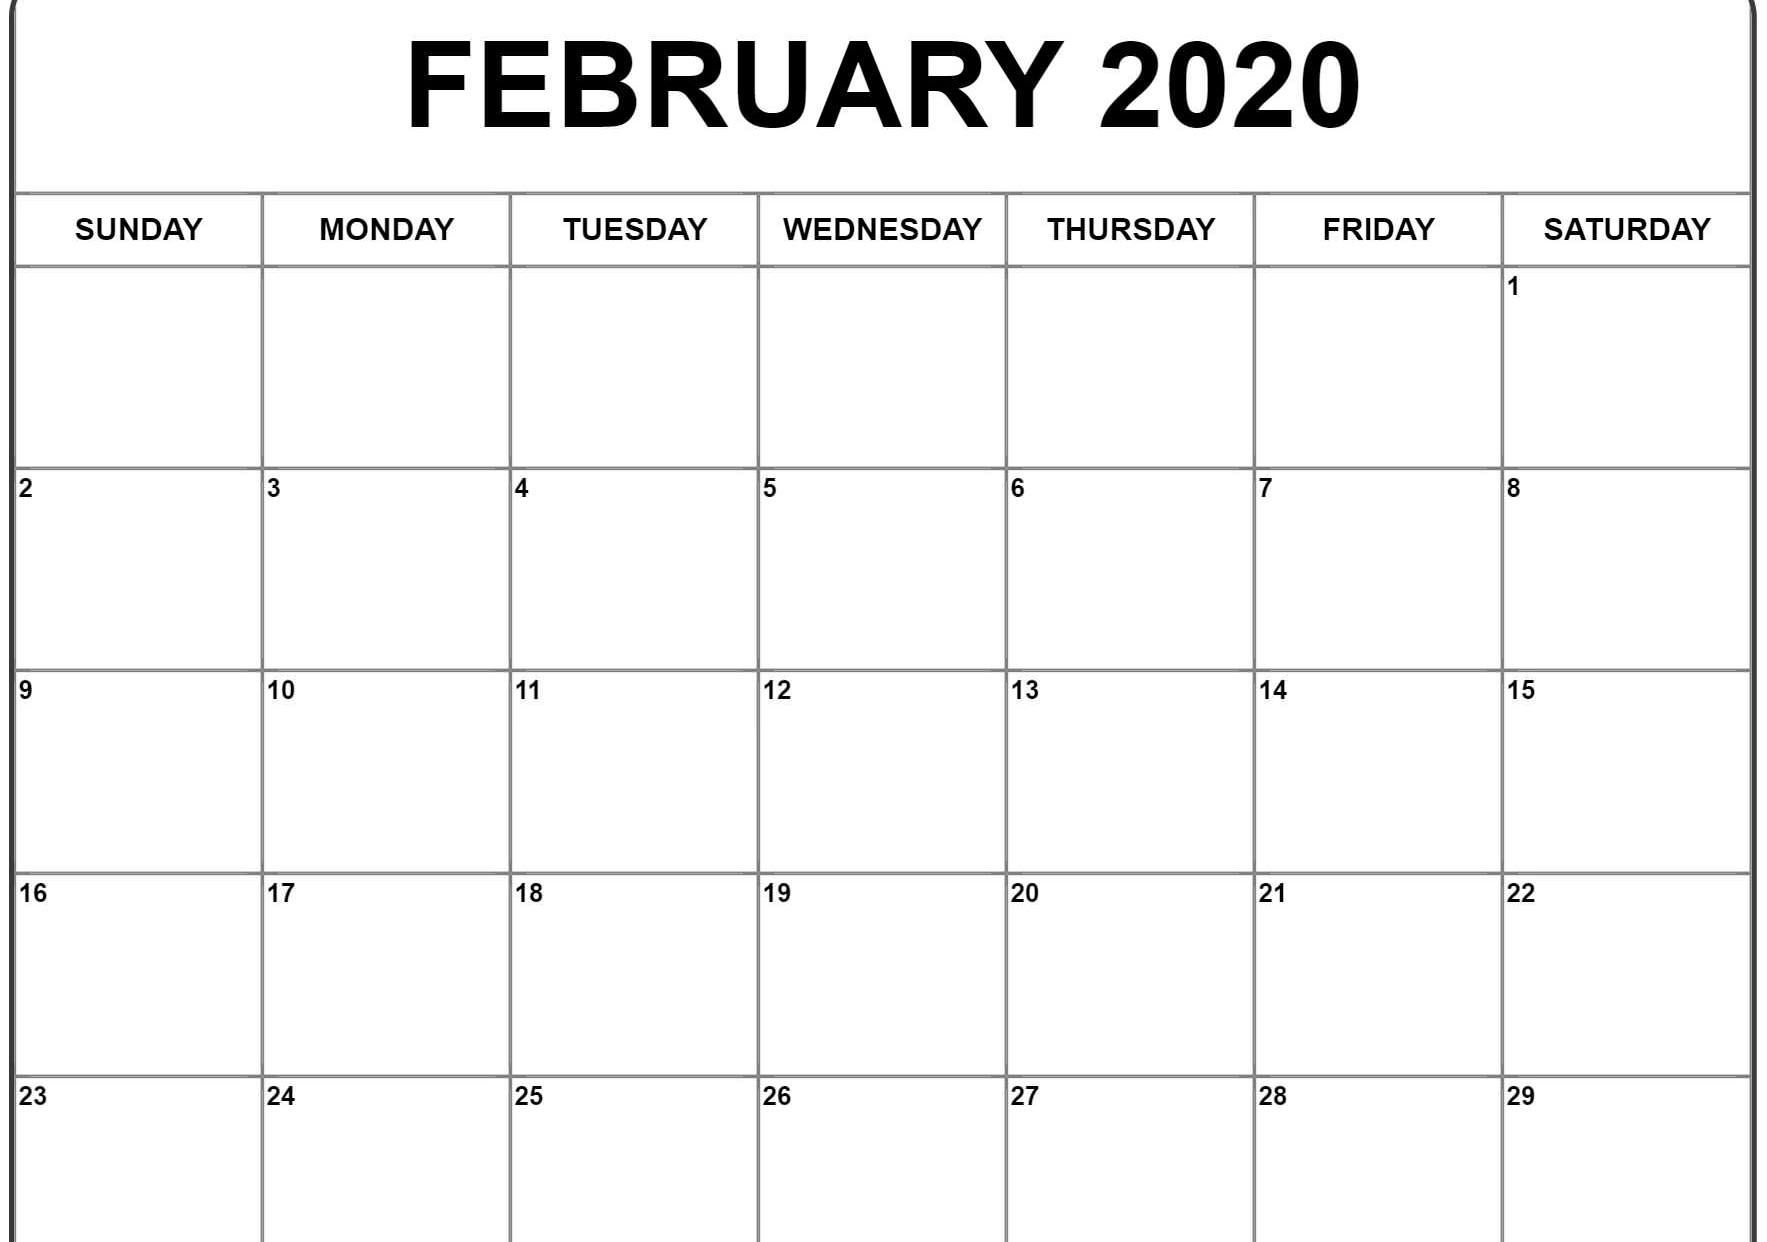 February 2020 Calendar Excel | Monthly Calendar Template intended for Special Calendar Days In 2020